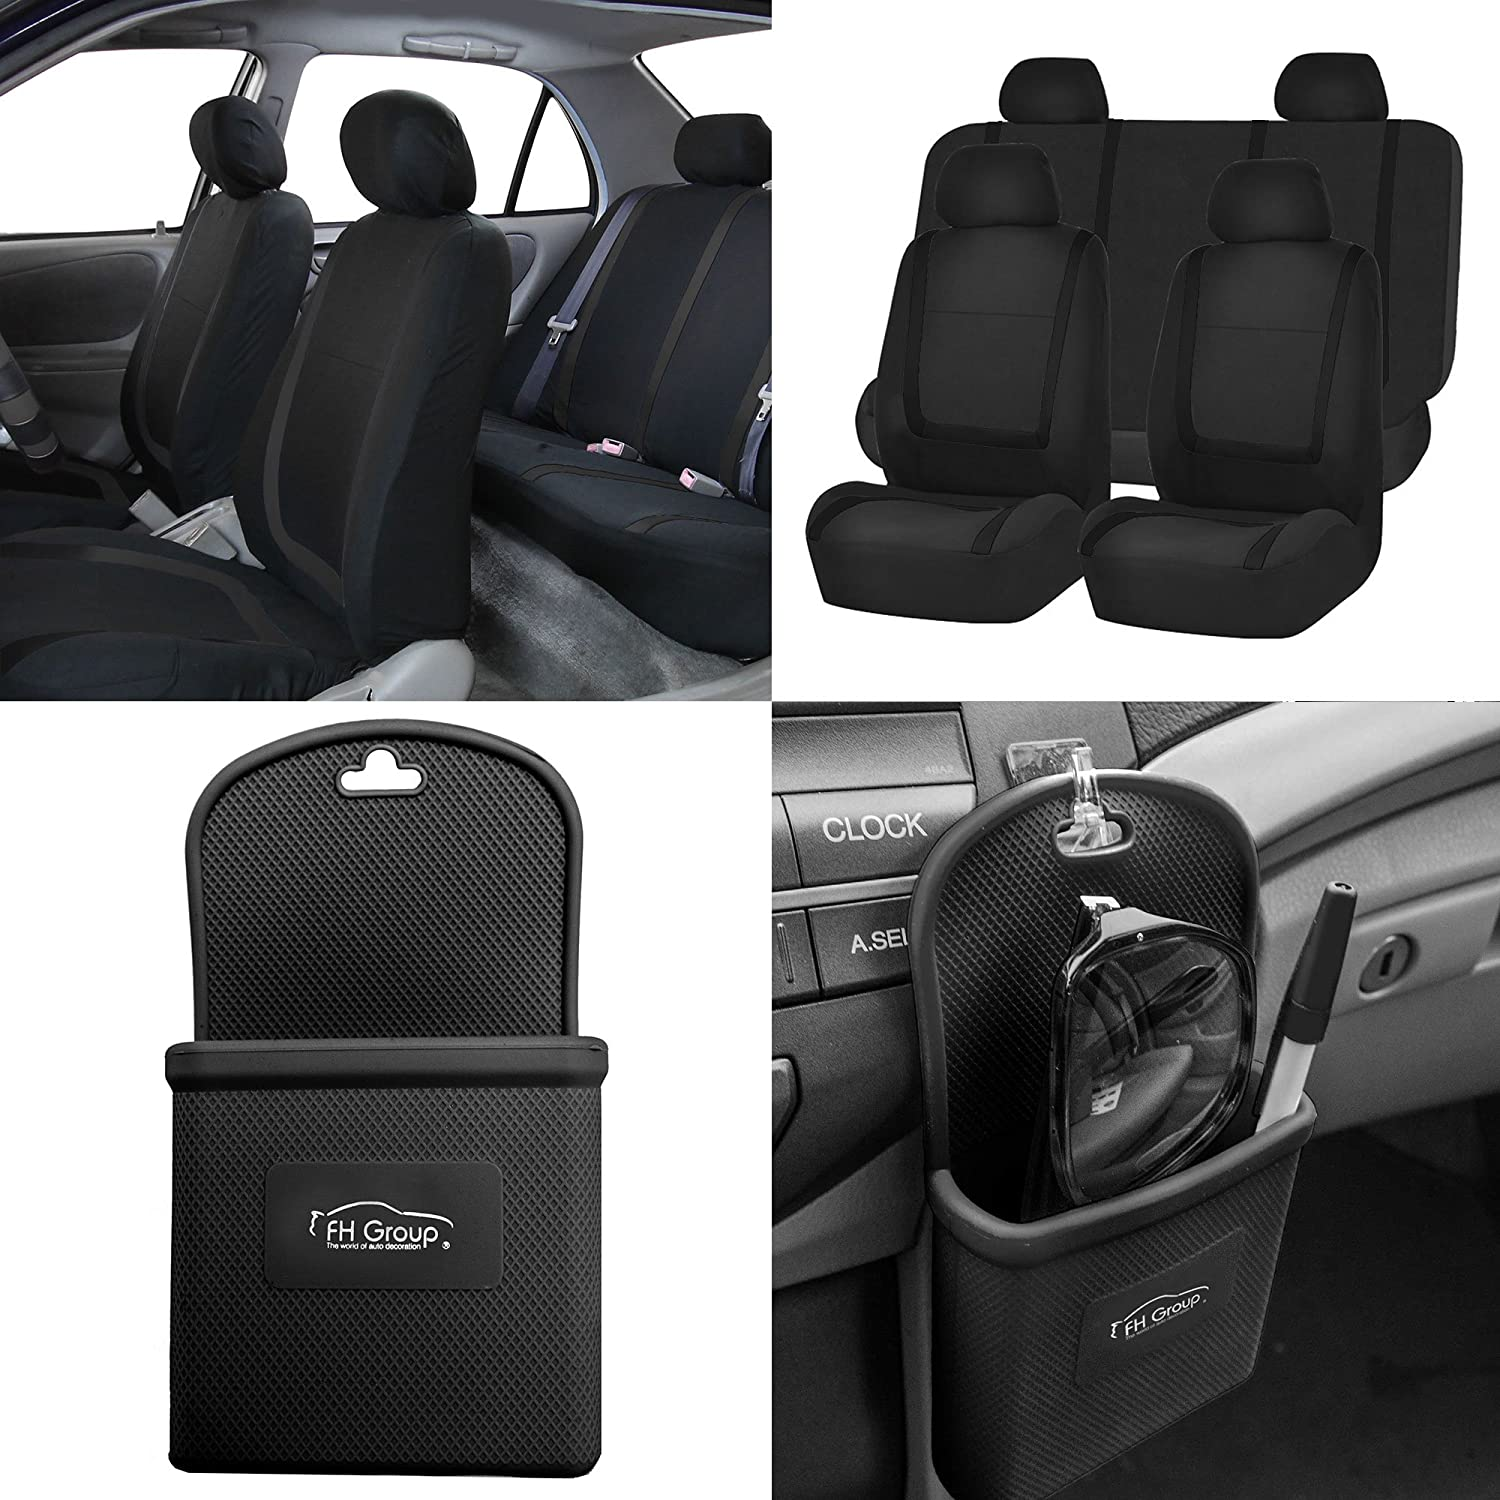 Fit Most Car Truck SUV FH Group FH-FB063115 Full Set Sports Fabric Car Seat Covers Solid Black Or Van Airbag Compatible and Split Bench